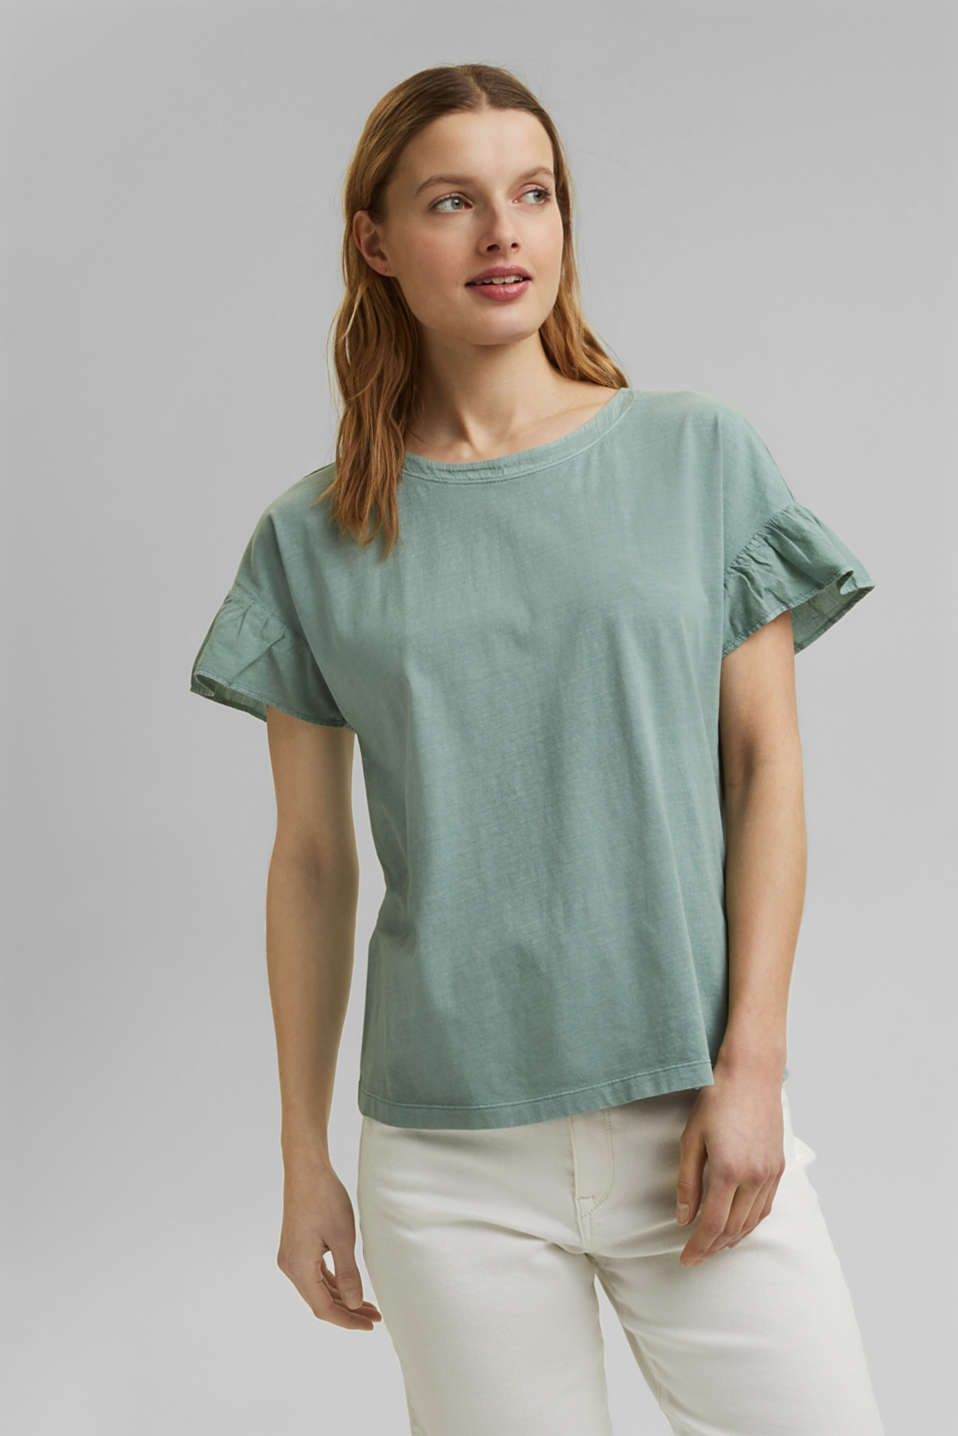 Esprit - T-shirt with flounce sleeves, organic cotton